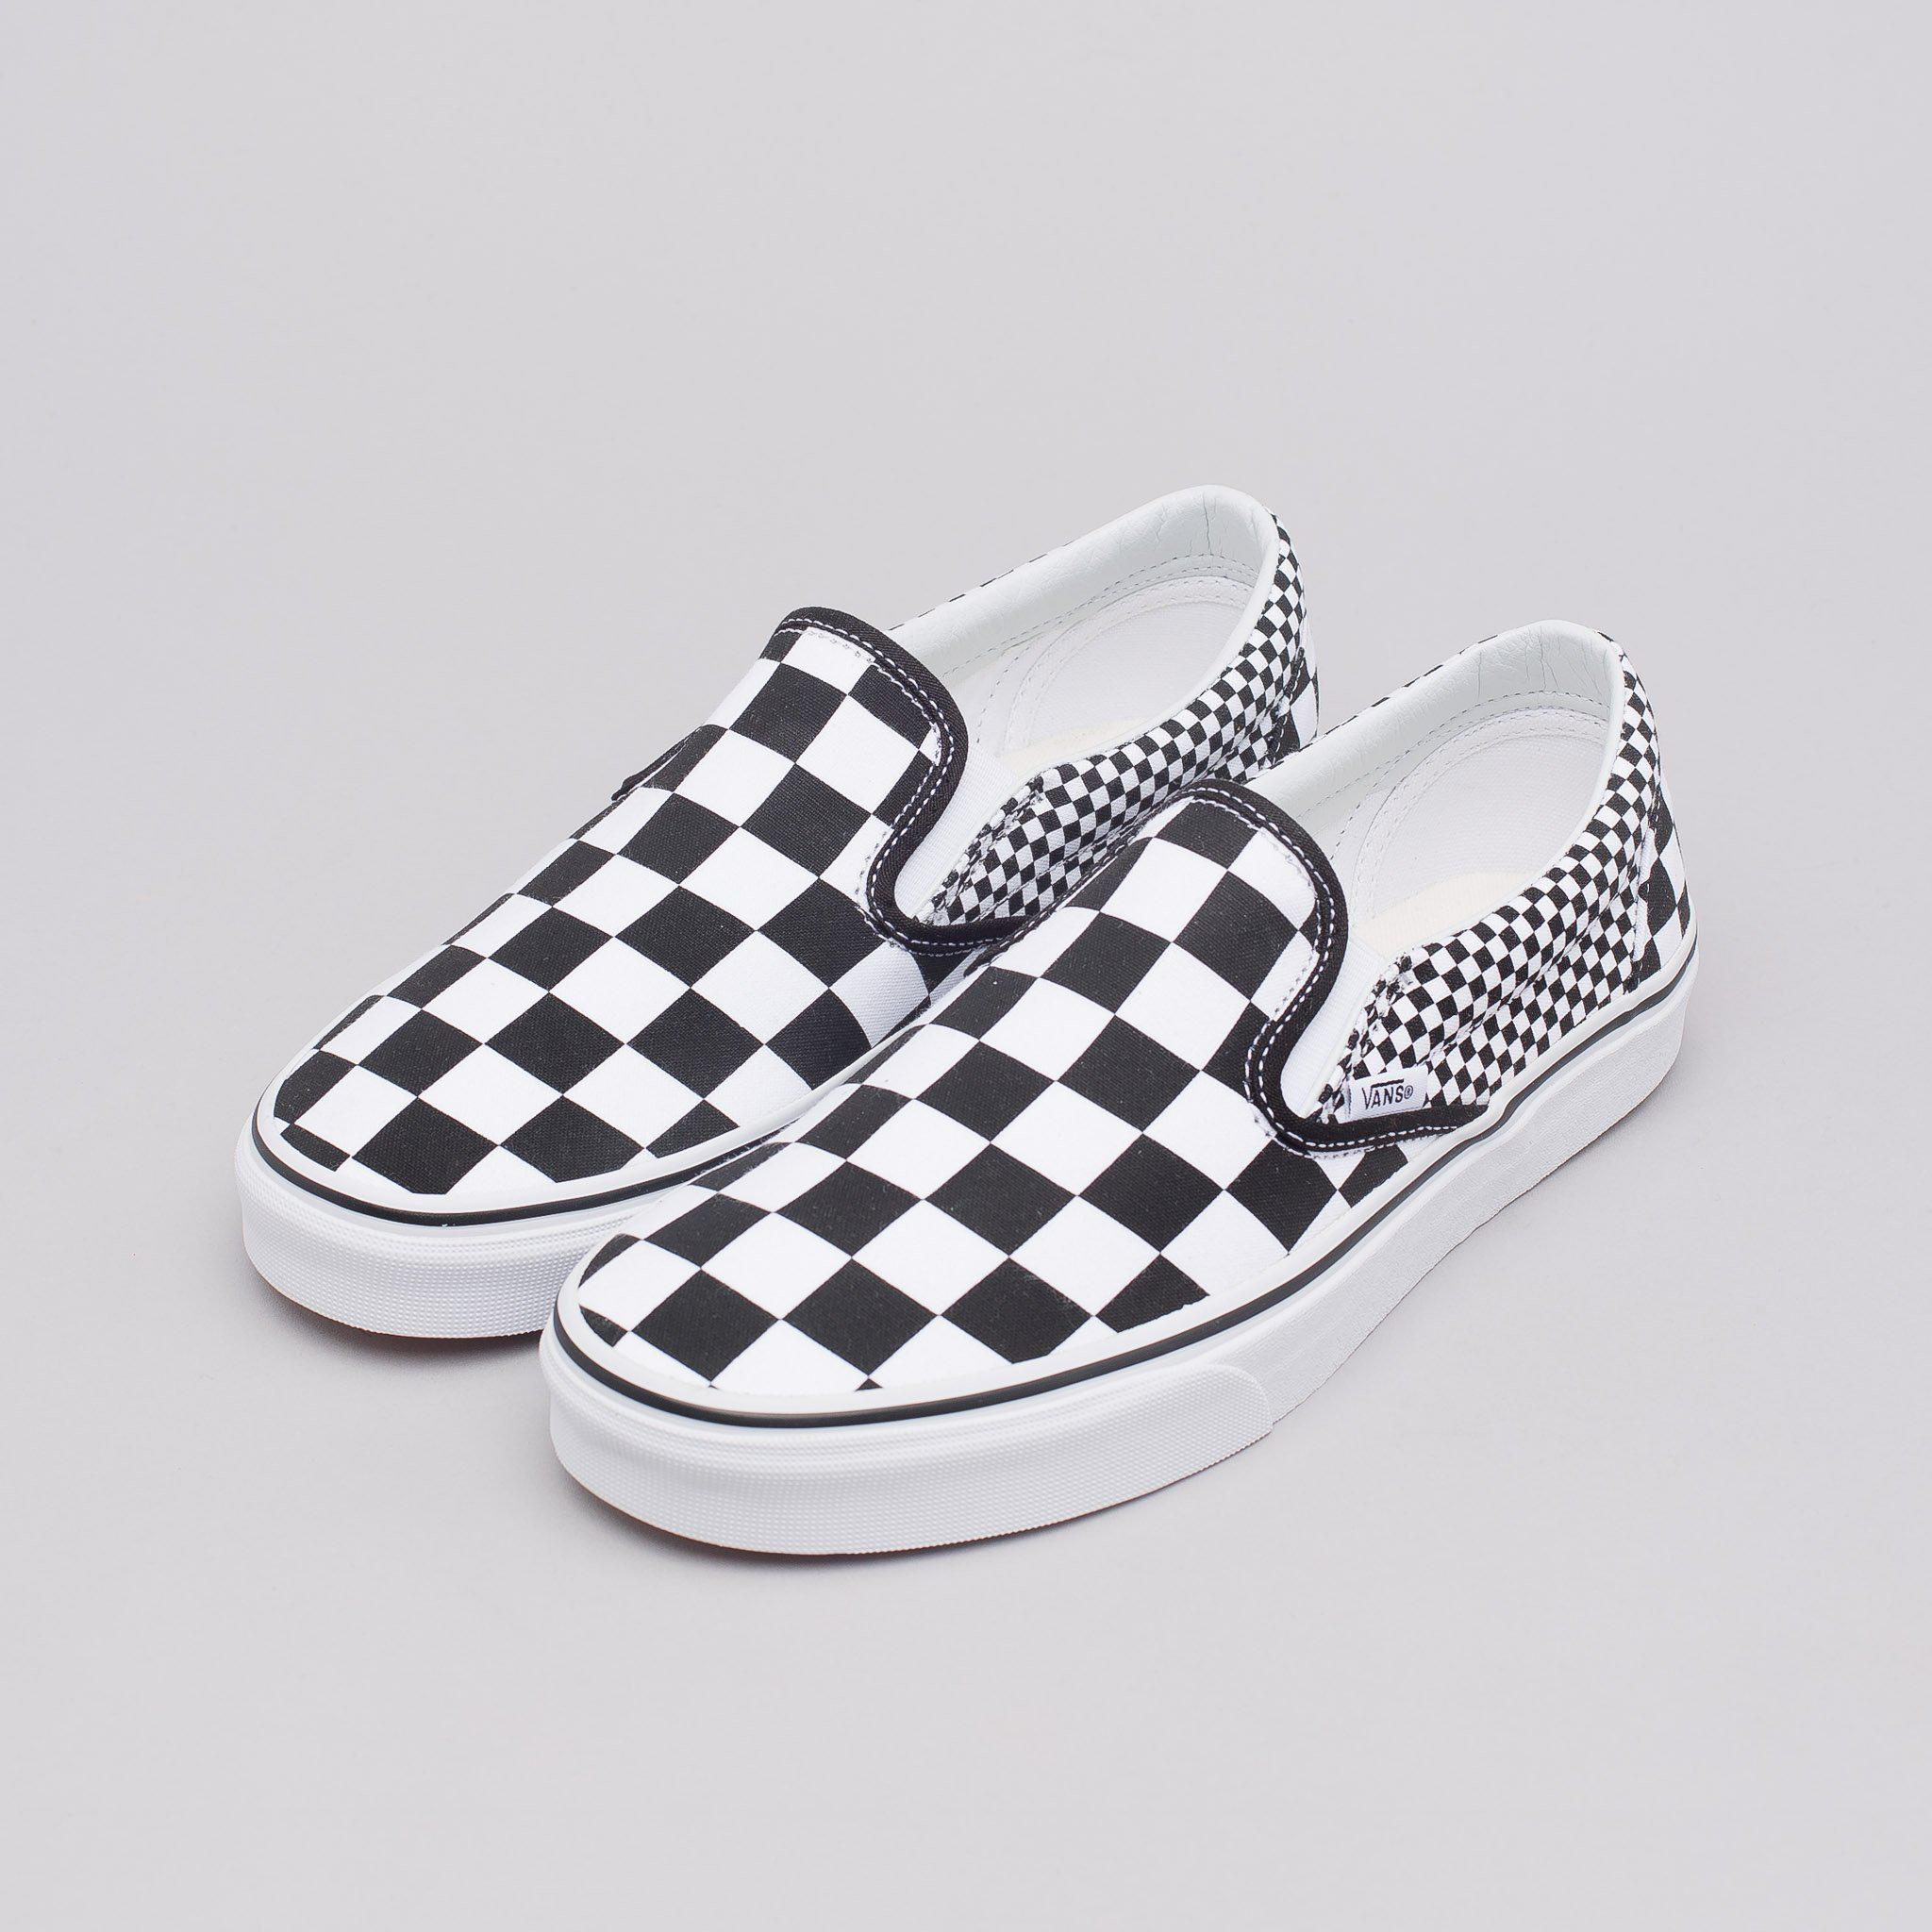 0bb280aed09 Lyst - Vans Classic Slip-on In Checkerboard Mix in White for Men